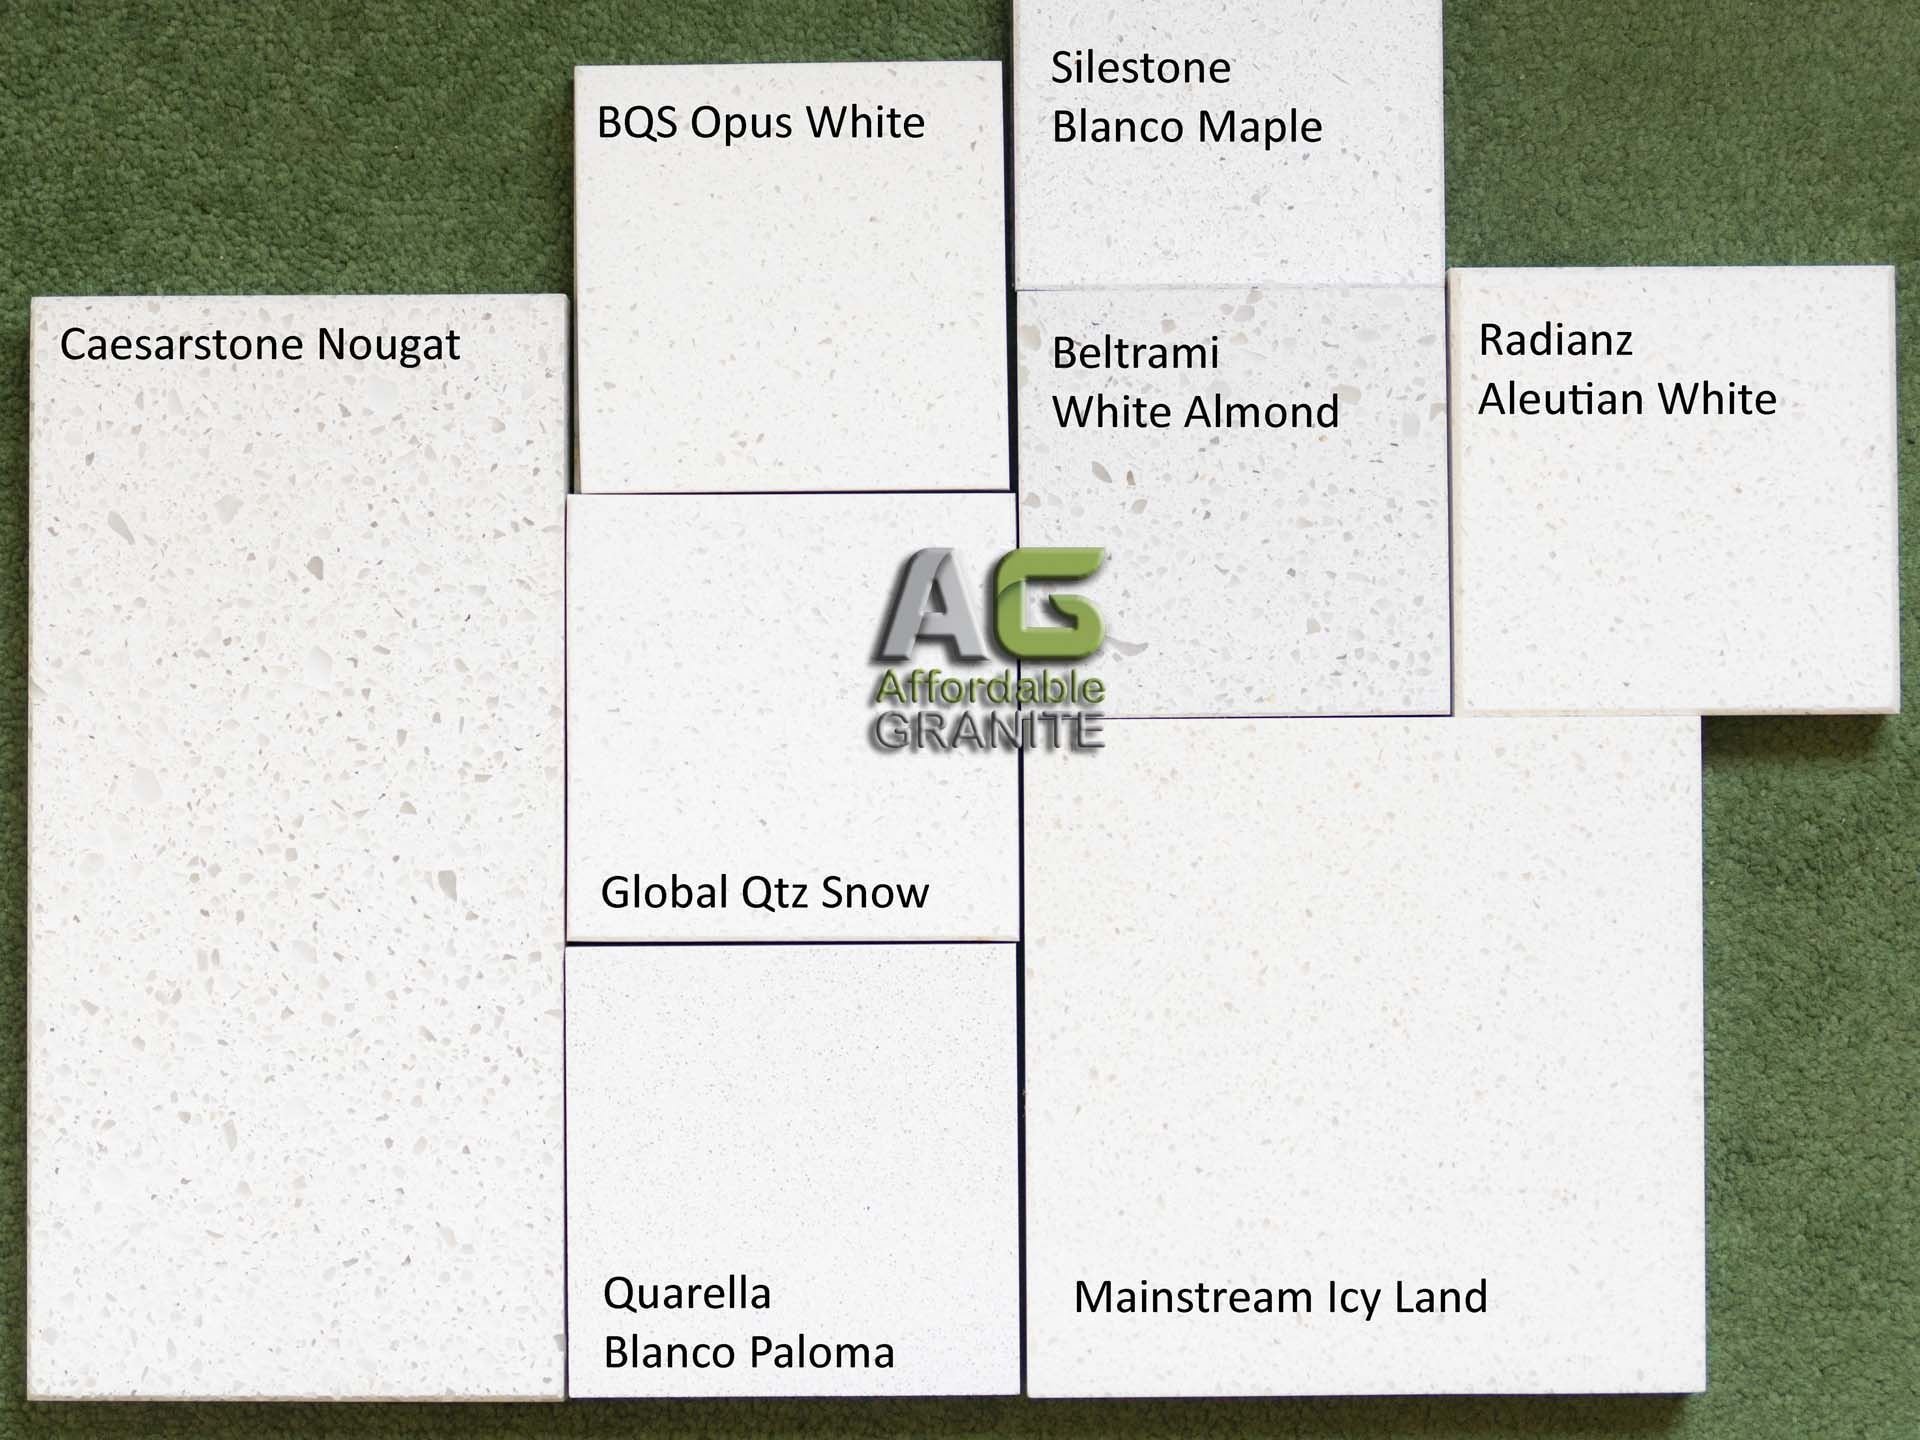 Caesarstone Nougat, BQS Opus White, Global Snow, Quarella Blanco Paloma, Mainstream Icy Land, Radianz Aleutian White, Beltrami White Almond